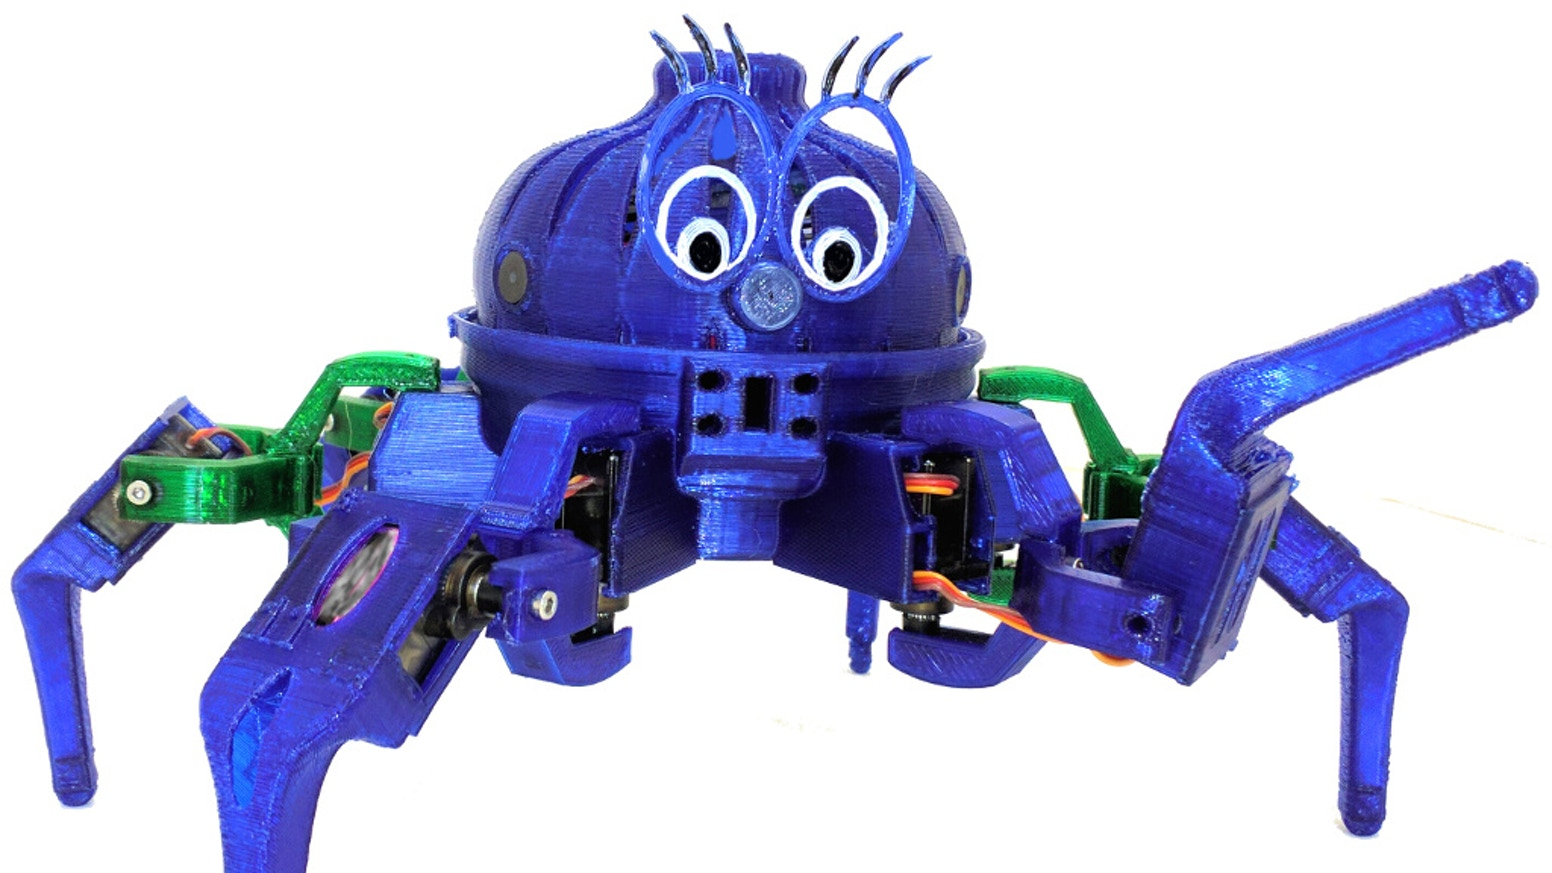 A low cost, open source, wireless, 3D printed, Scratch programmable Hexapod Robot designed for games, education, and FUN!